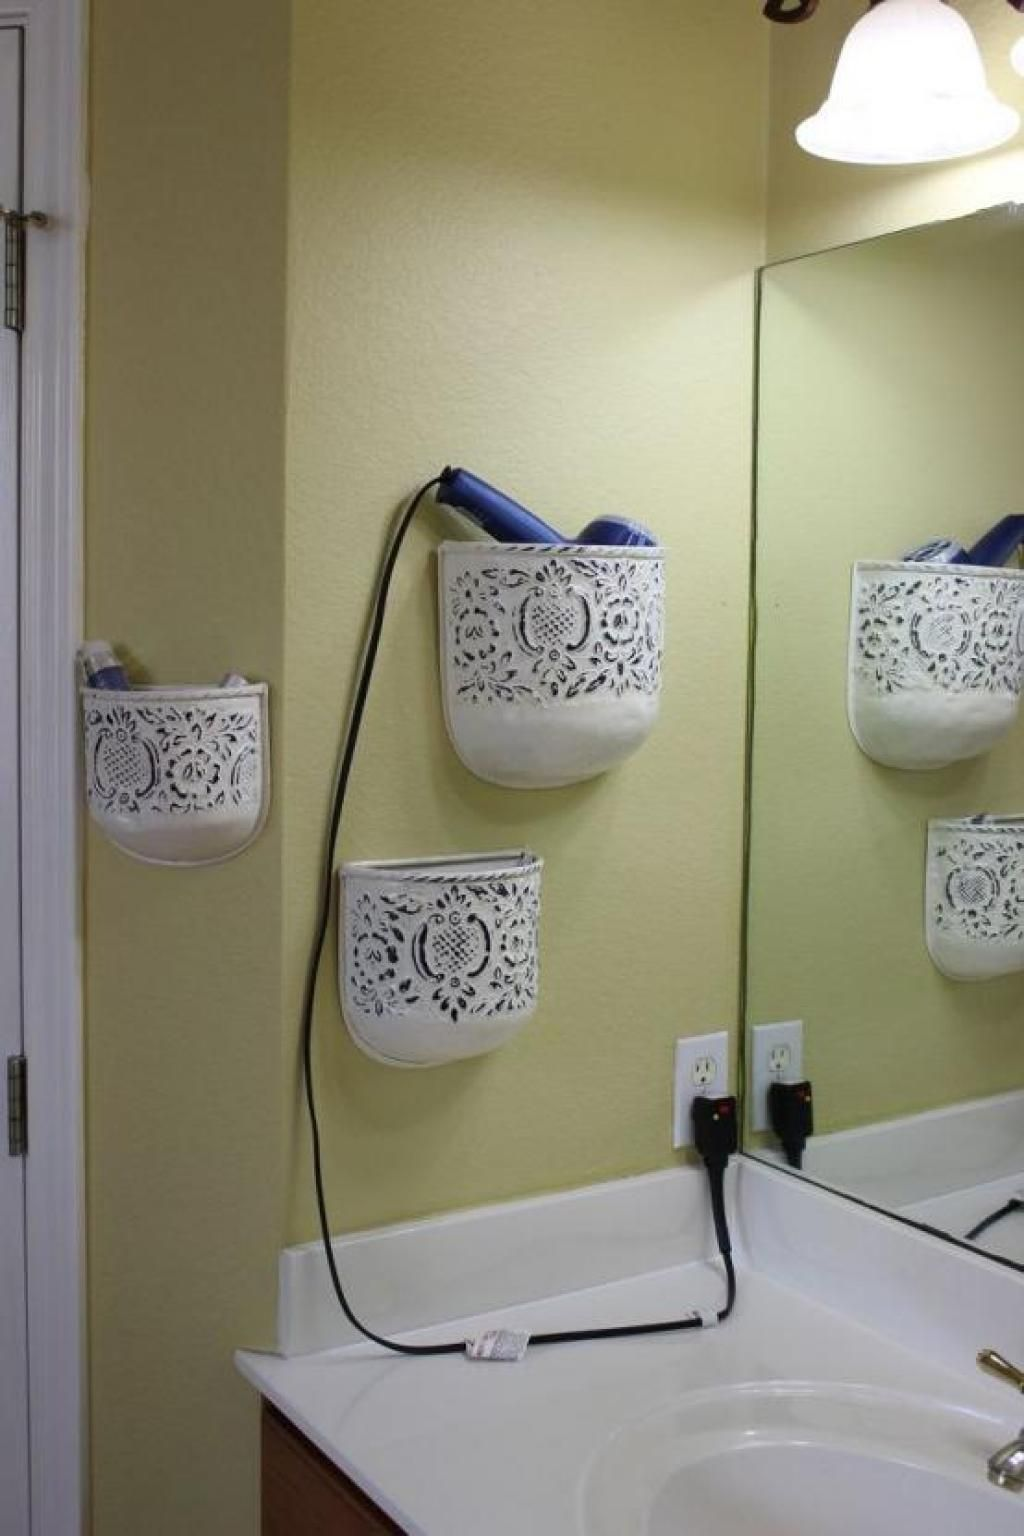 Bathroom Tile Design Tool Adorable Practical Bathroom Storage Ideas Hair Dryer Storage And Bathroom Design Inspiration